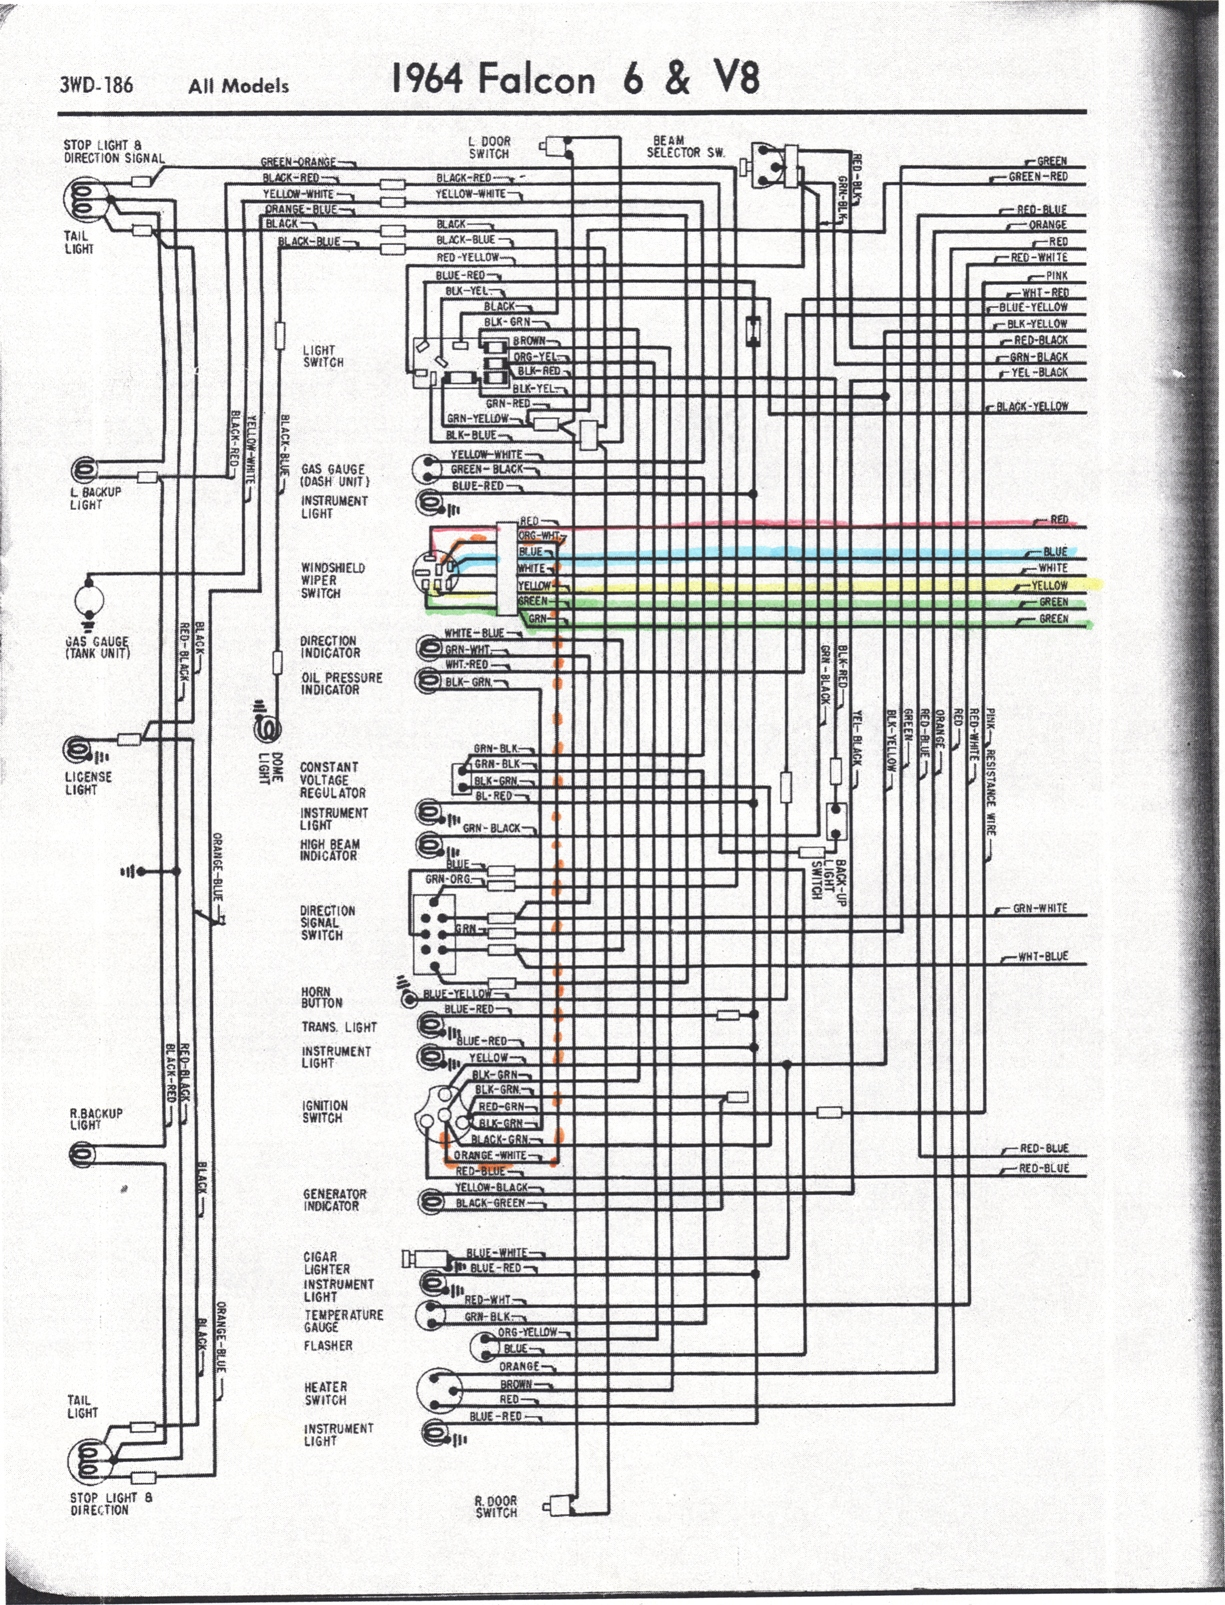 64_Falcon 1 falcon diagrams 1964 ford falcon wiring diagram at soozxer.org